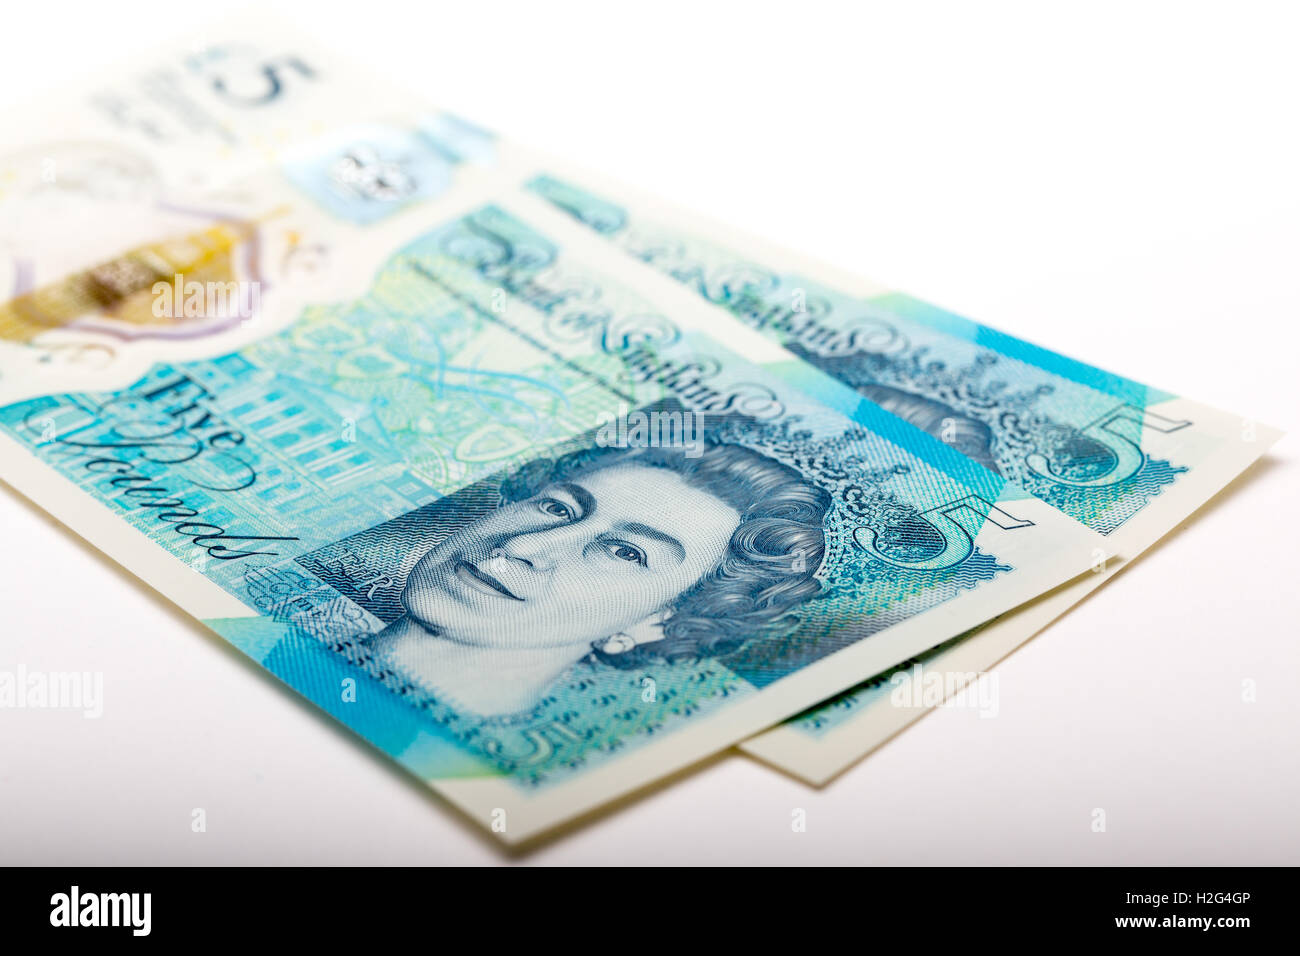 The New waterproof Polymer UK Five Pound Note - Stock Image